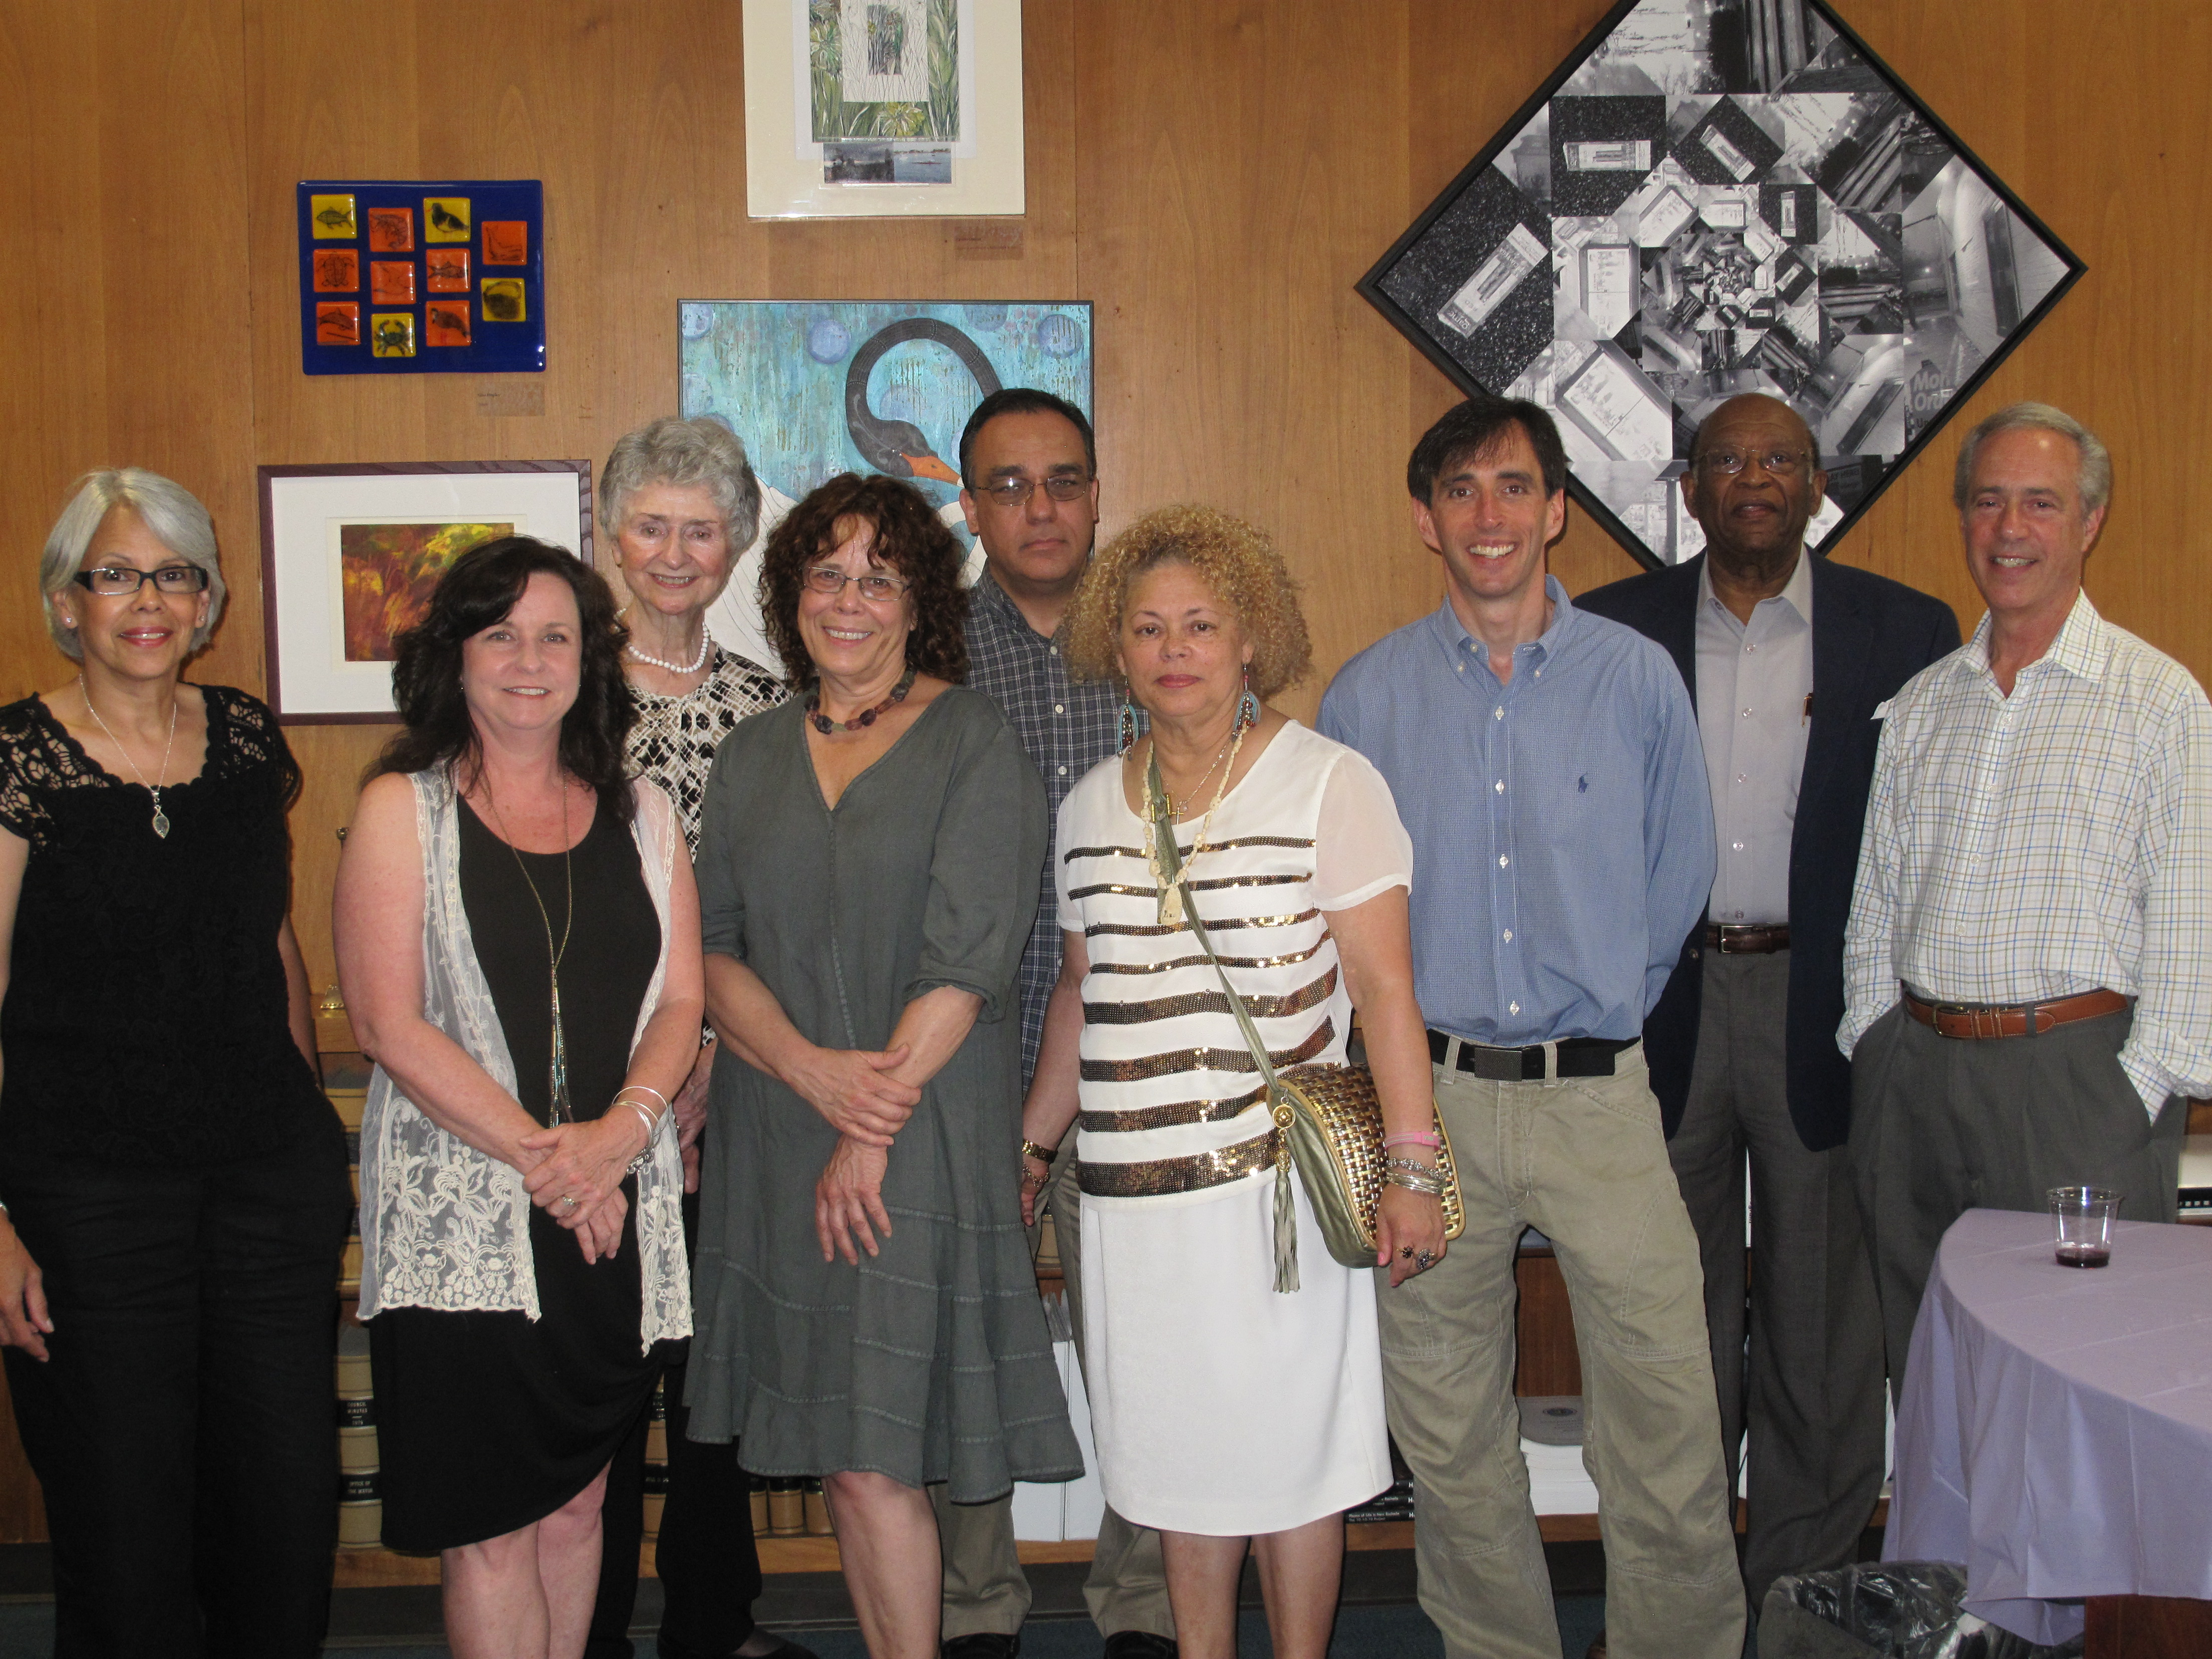 Thanking Artists at City Hall